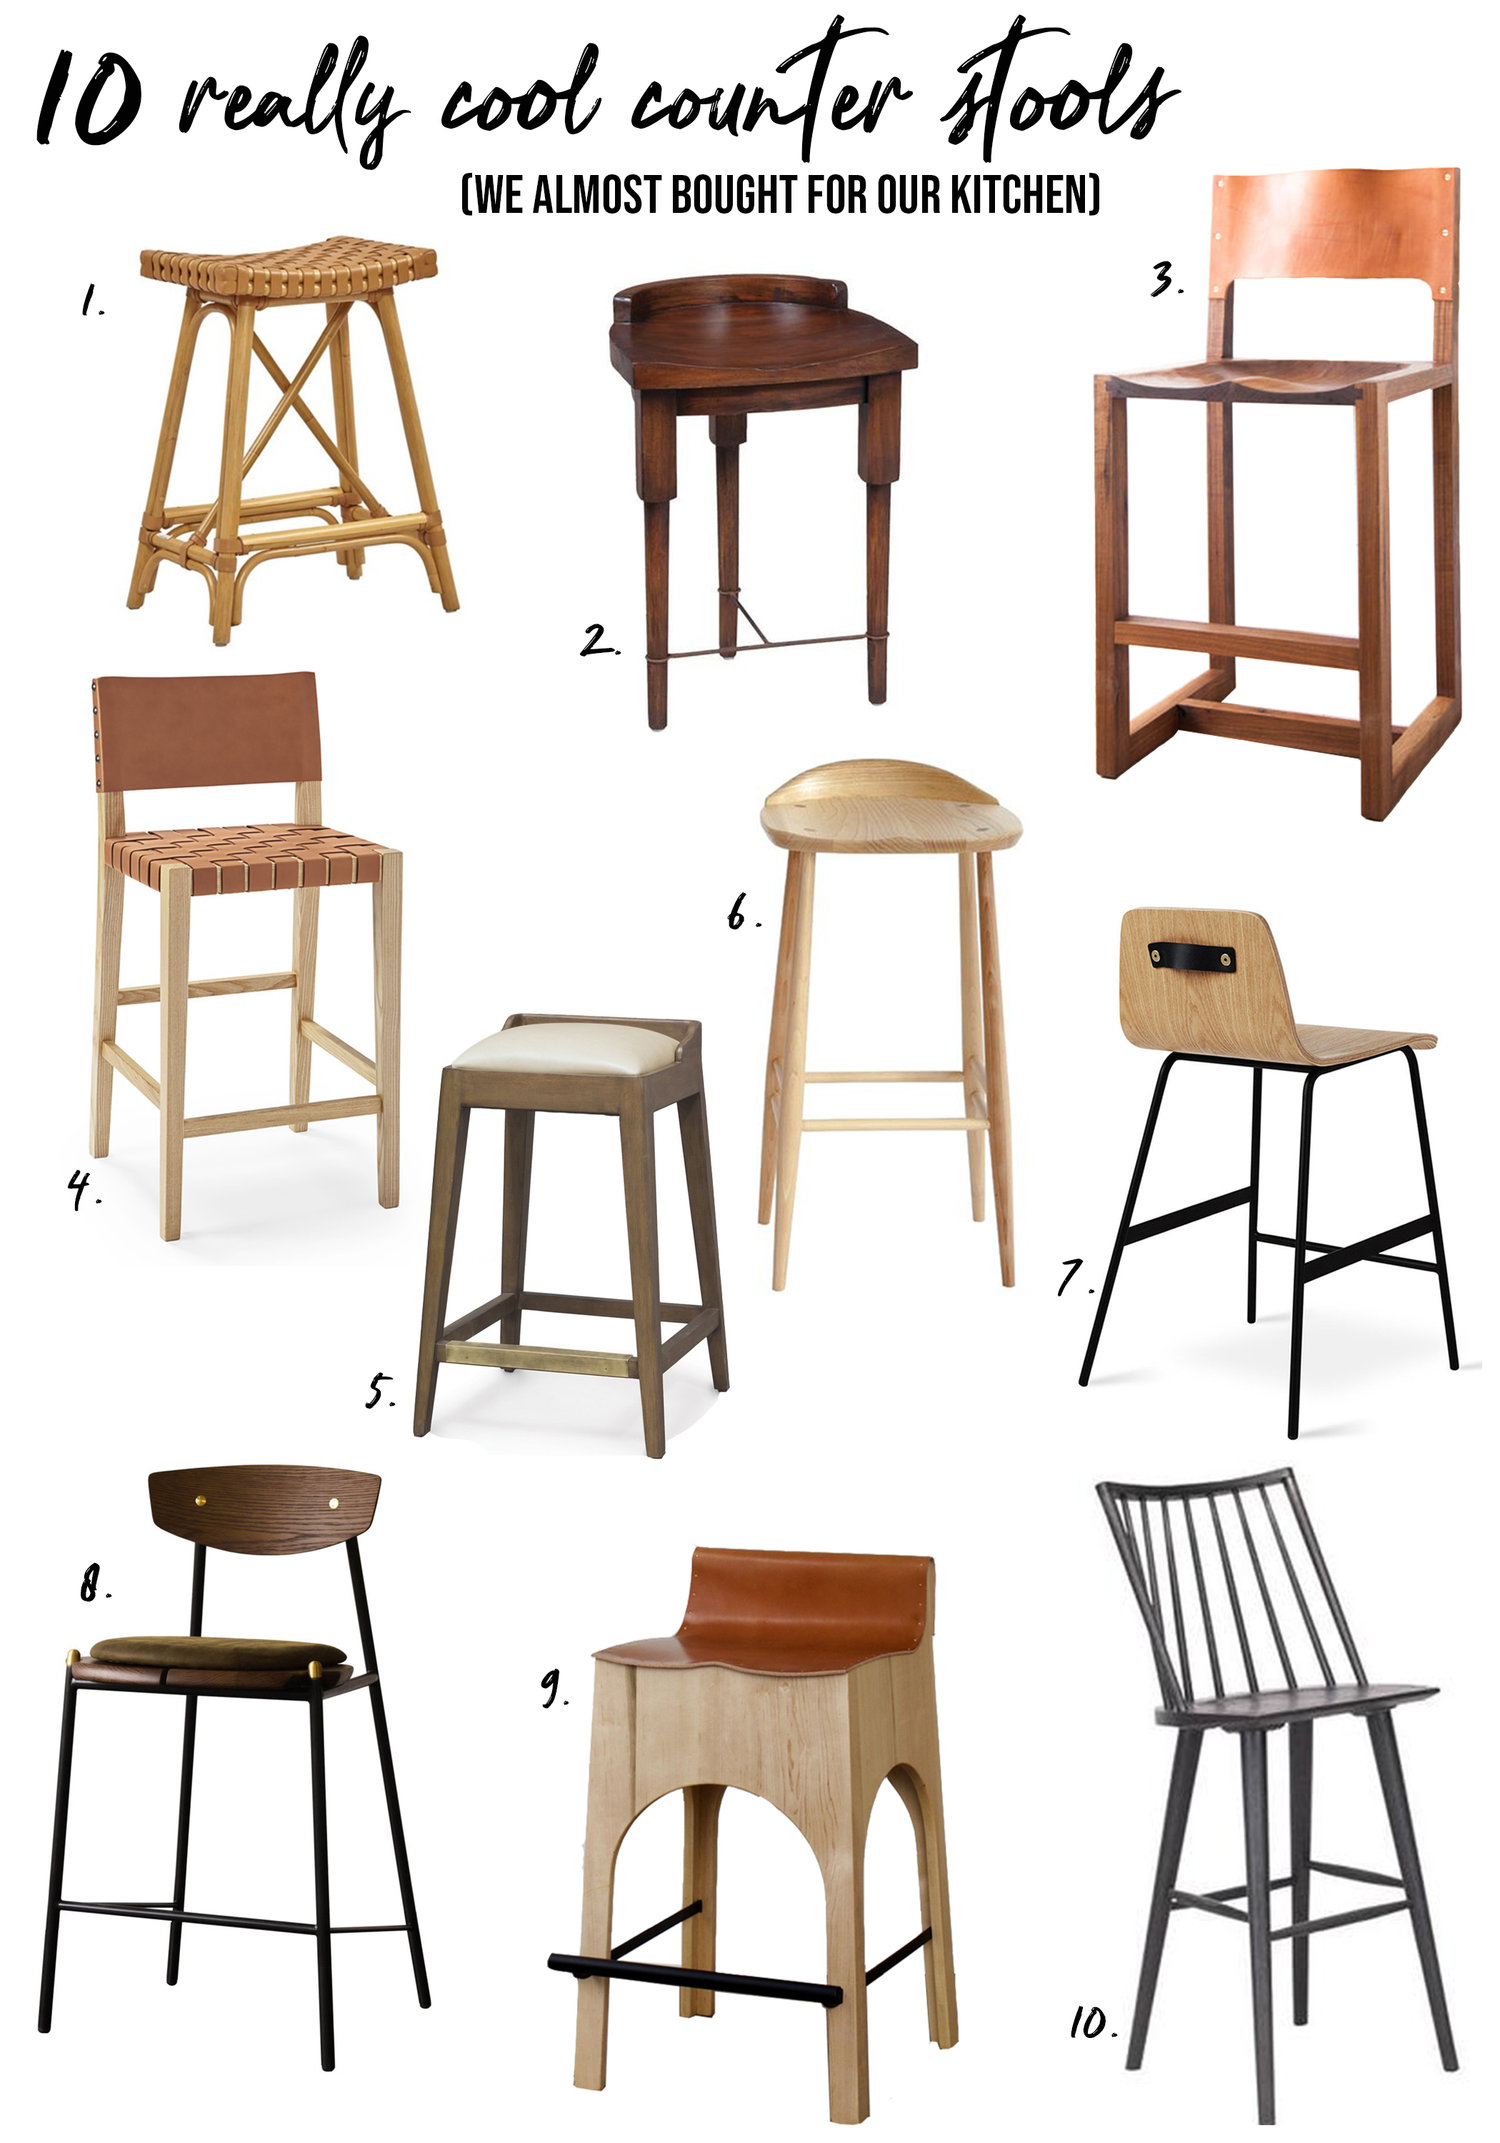 10 Really Cool Counter Stools We Almost Bought For Our Kitchen Casey Mason